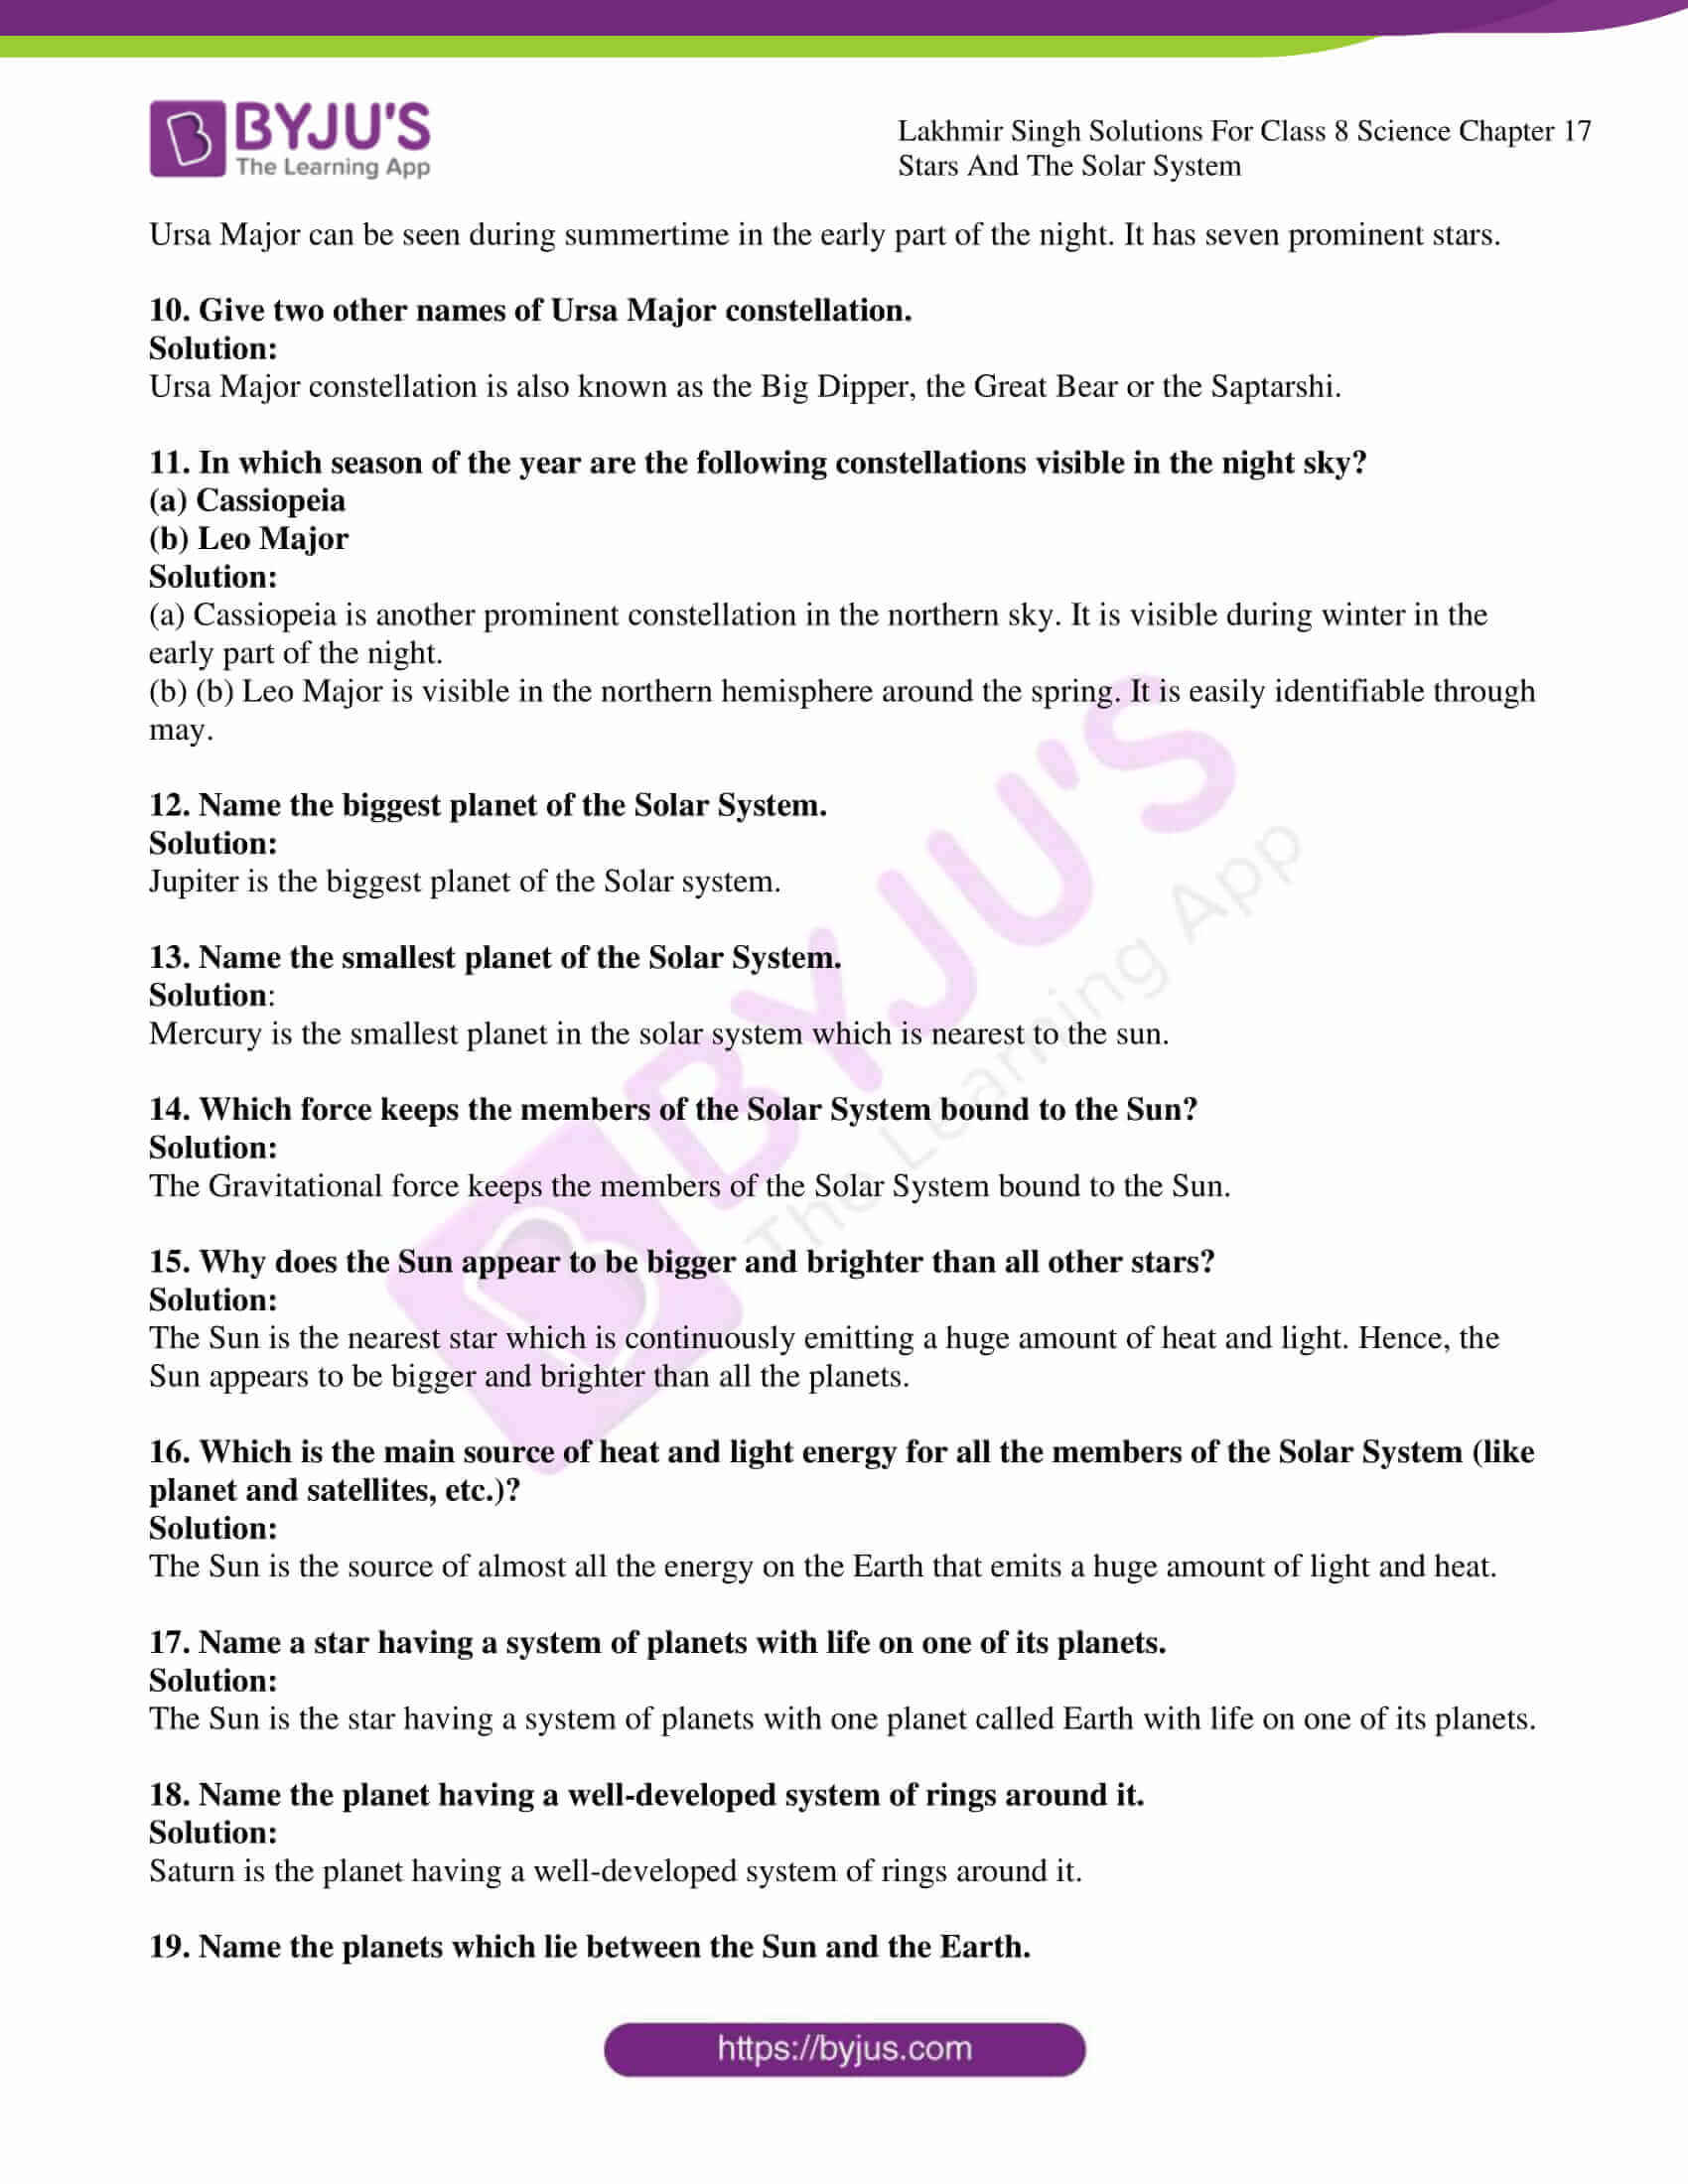 lakhmir singh solutions for class 8 science chapter 17 2